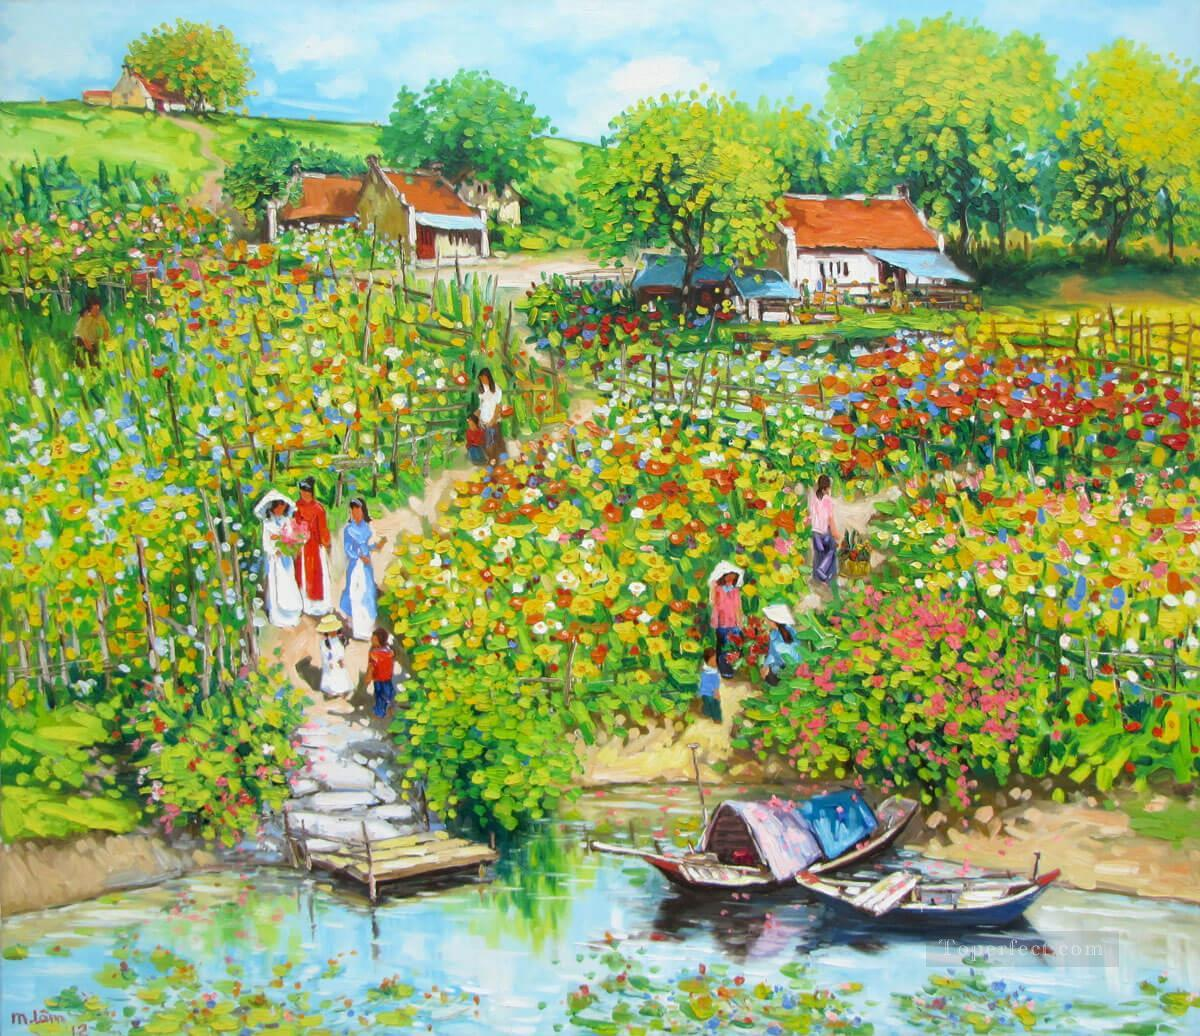 flower garden by the river vietnamese asian oil paintings - Flower Garden Paintings